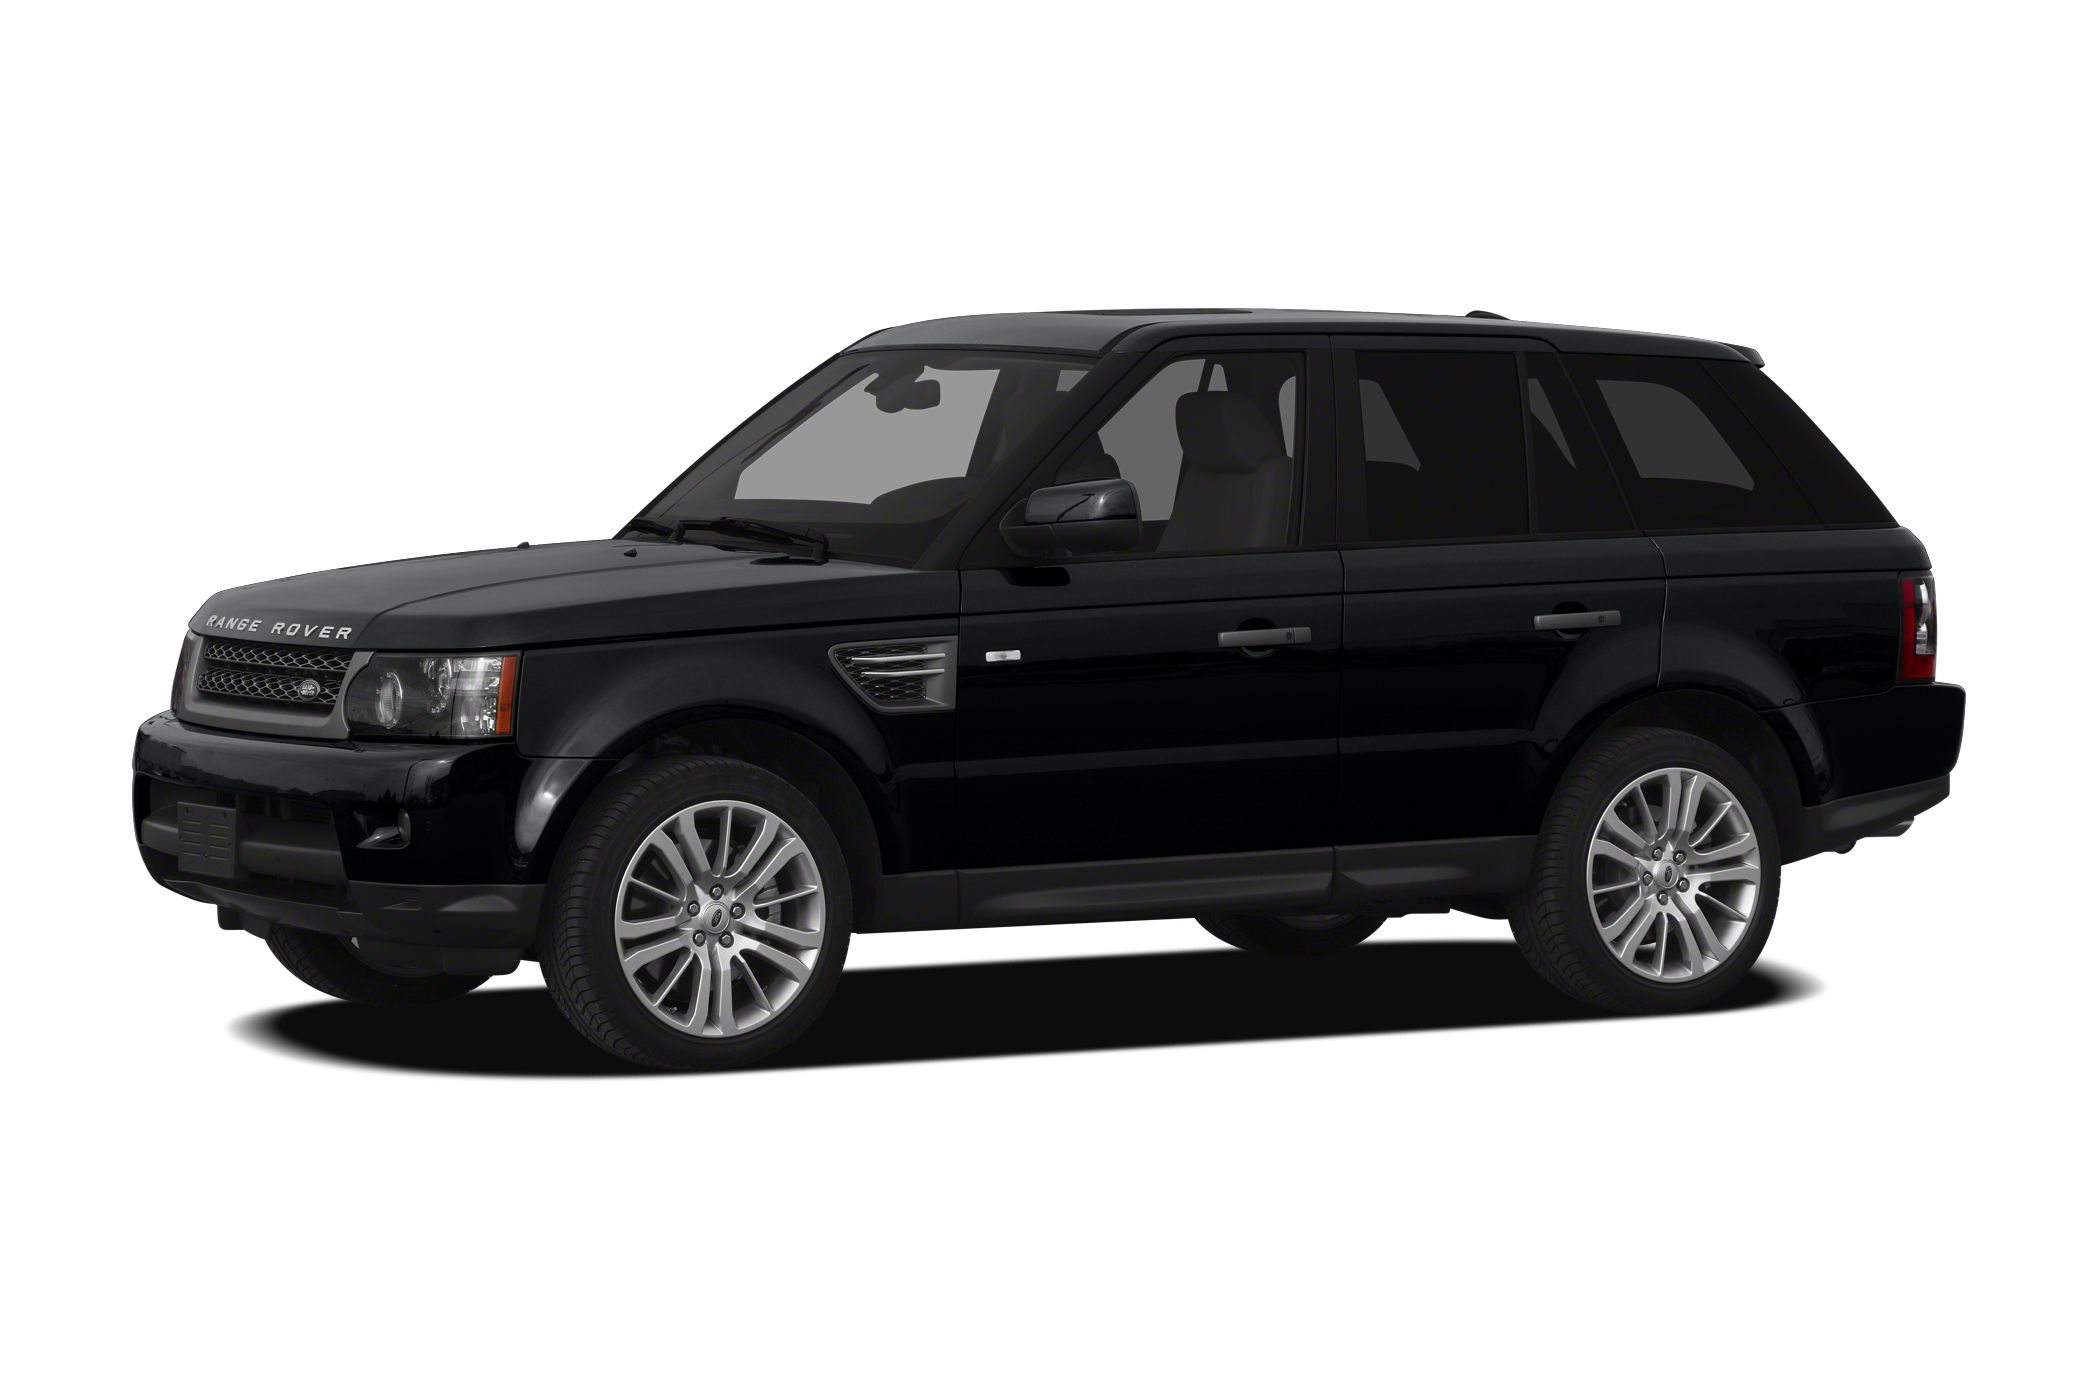 2011 Land Rover Range Rover Sport HSE WHITE ON TAN RANGE ROVER SPORT HEATED SEATS NAVIGATION AC